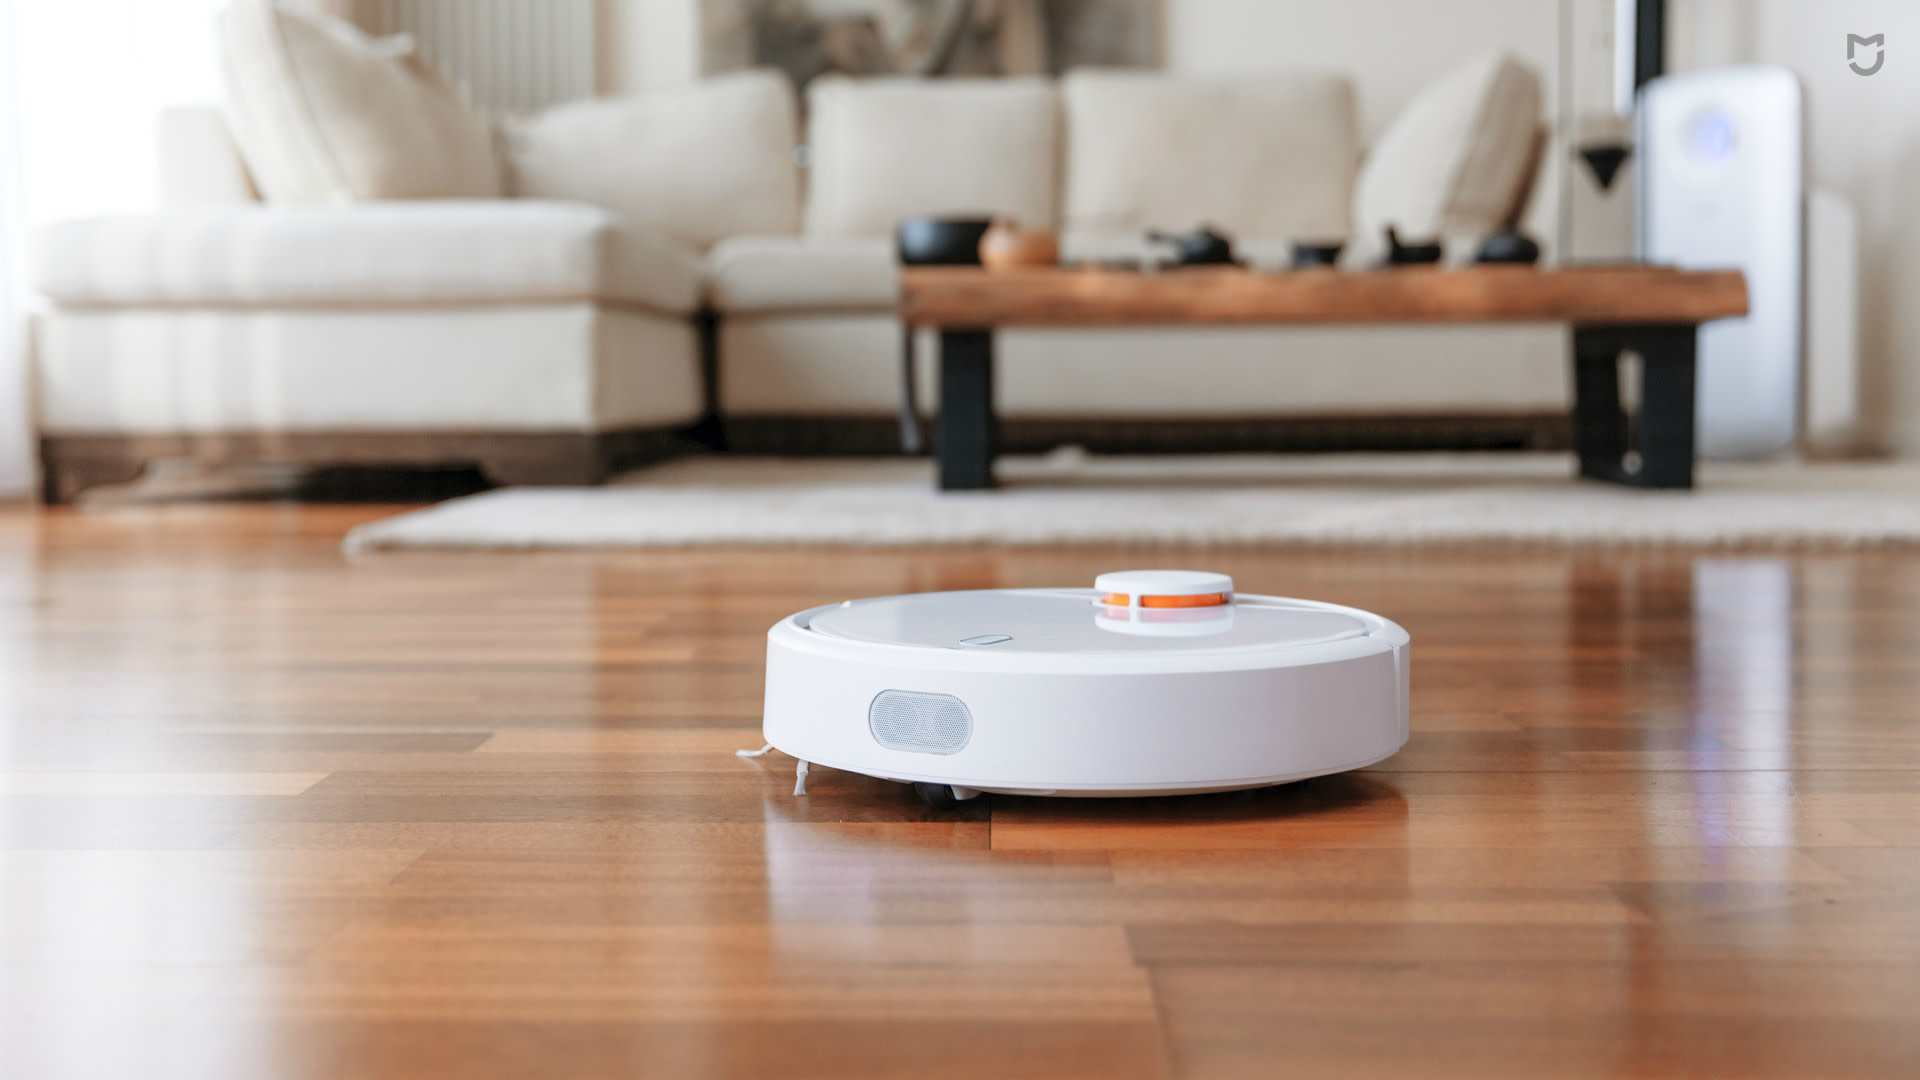 Xiaomi S Robot Vacuum Sucks More Than Its Peers